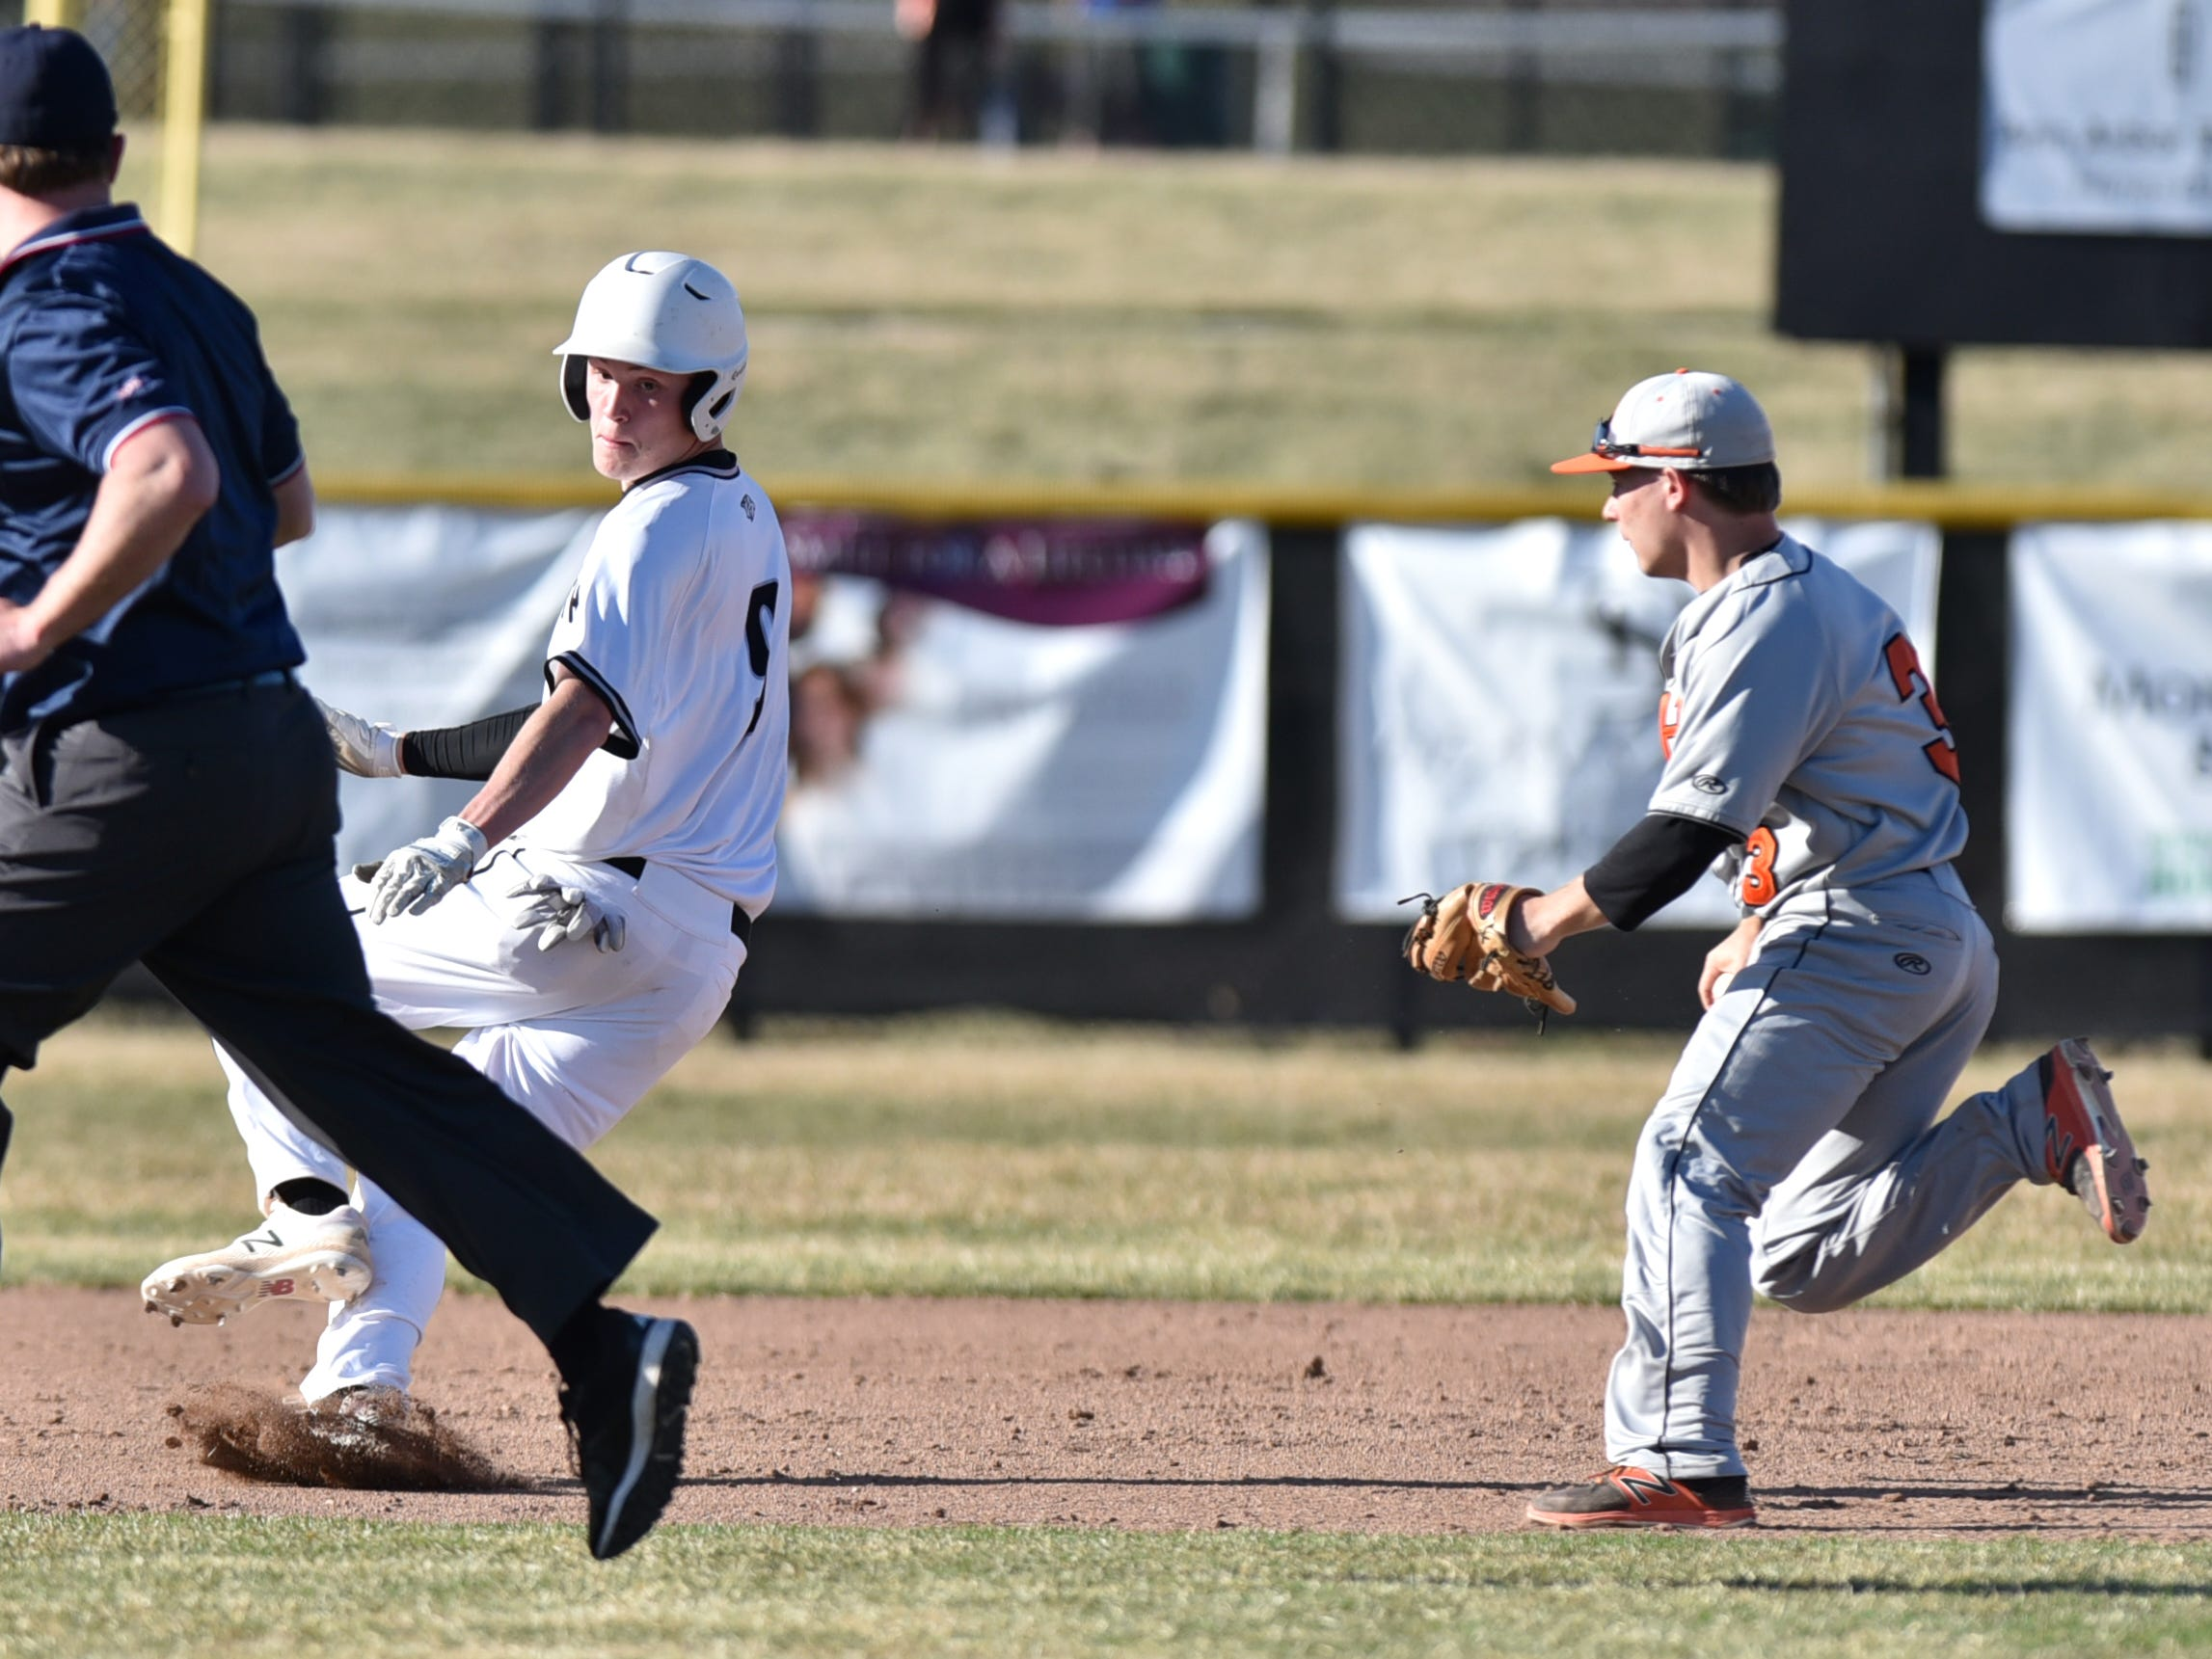 Plymouth's Anthony Sharkas, left, is caught in a run-down between second and third by Mustang Nick Prytash.